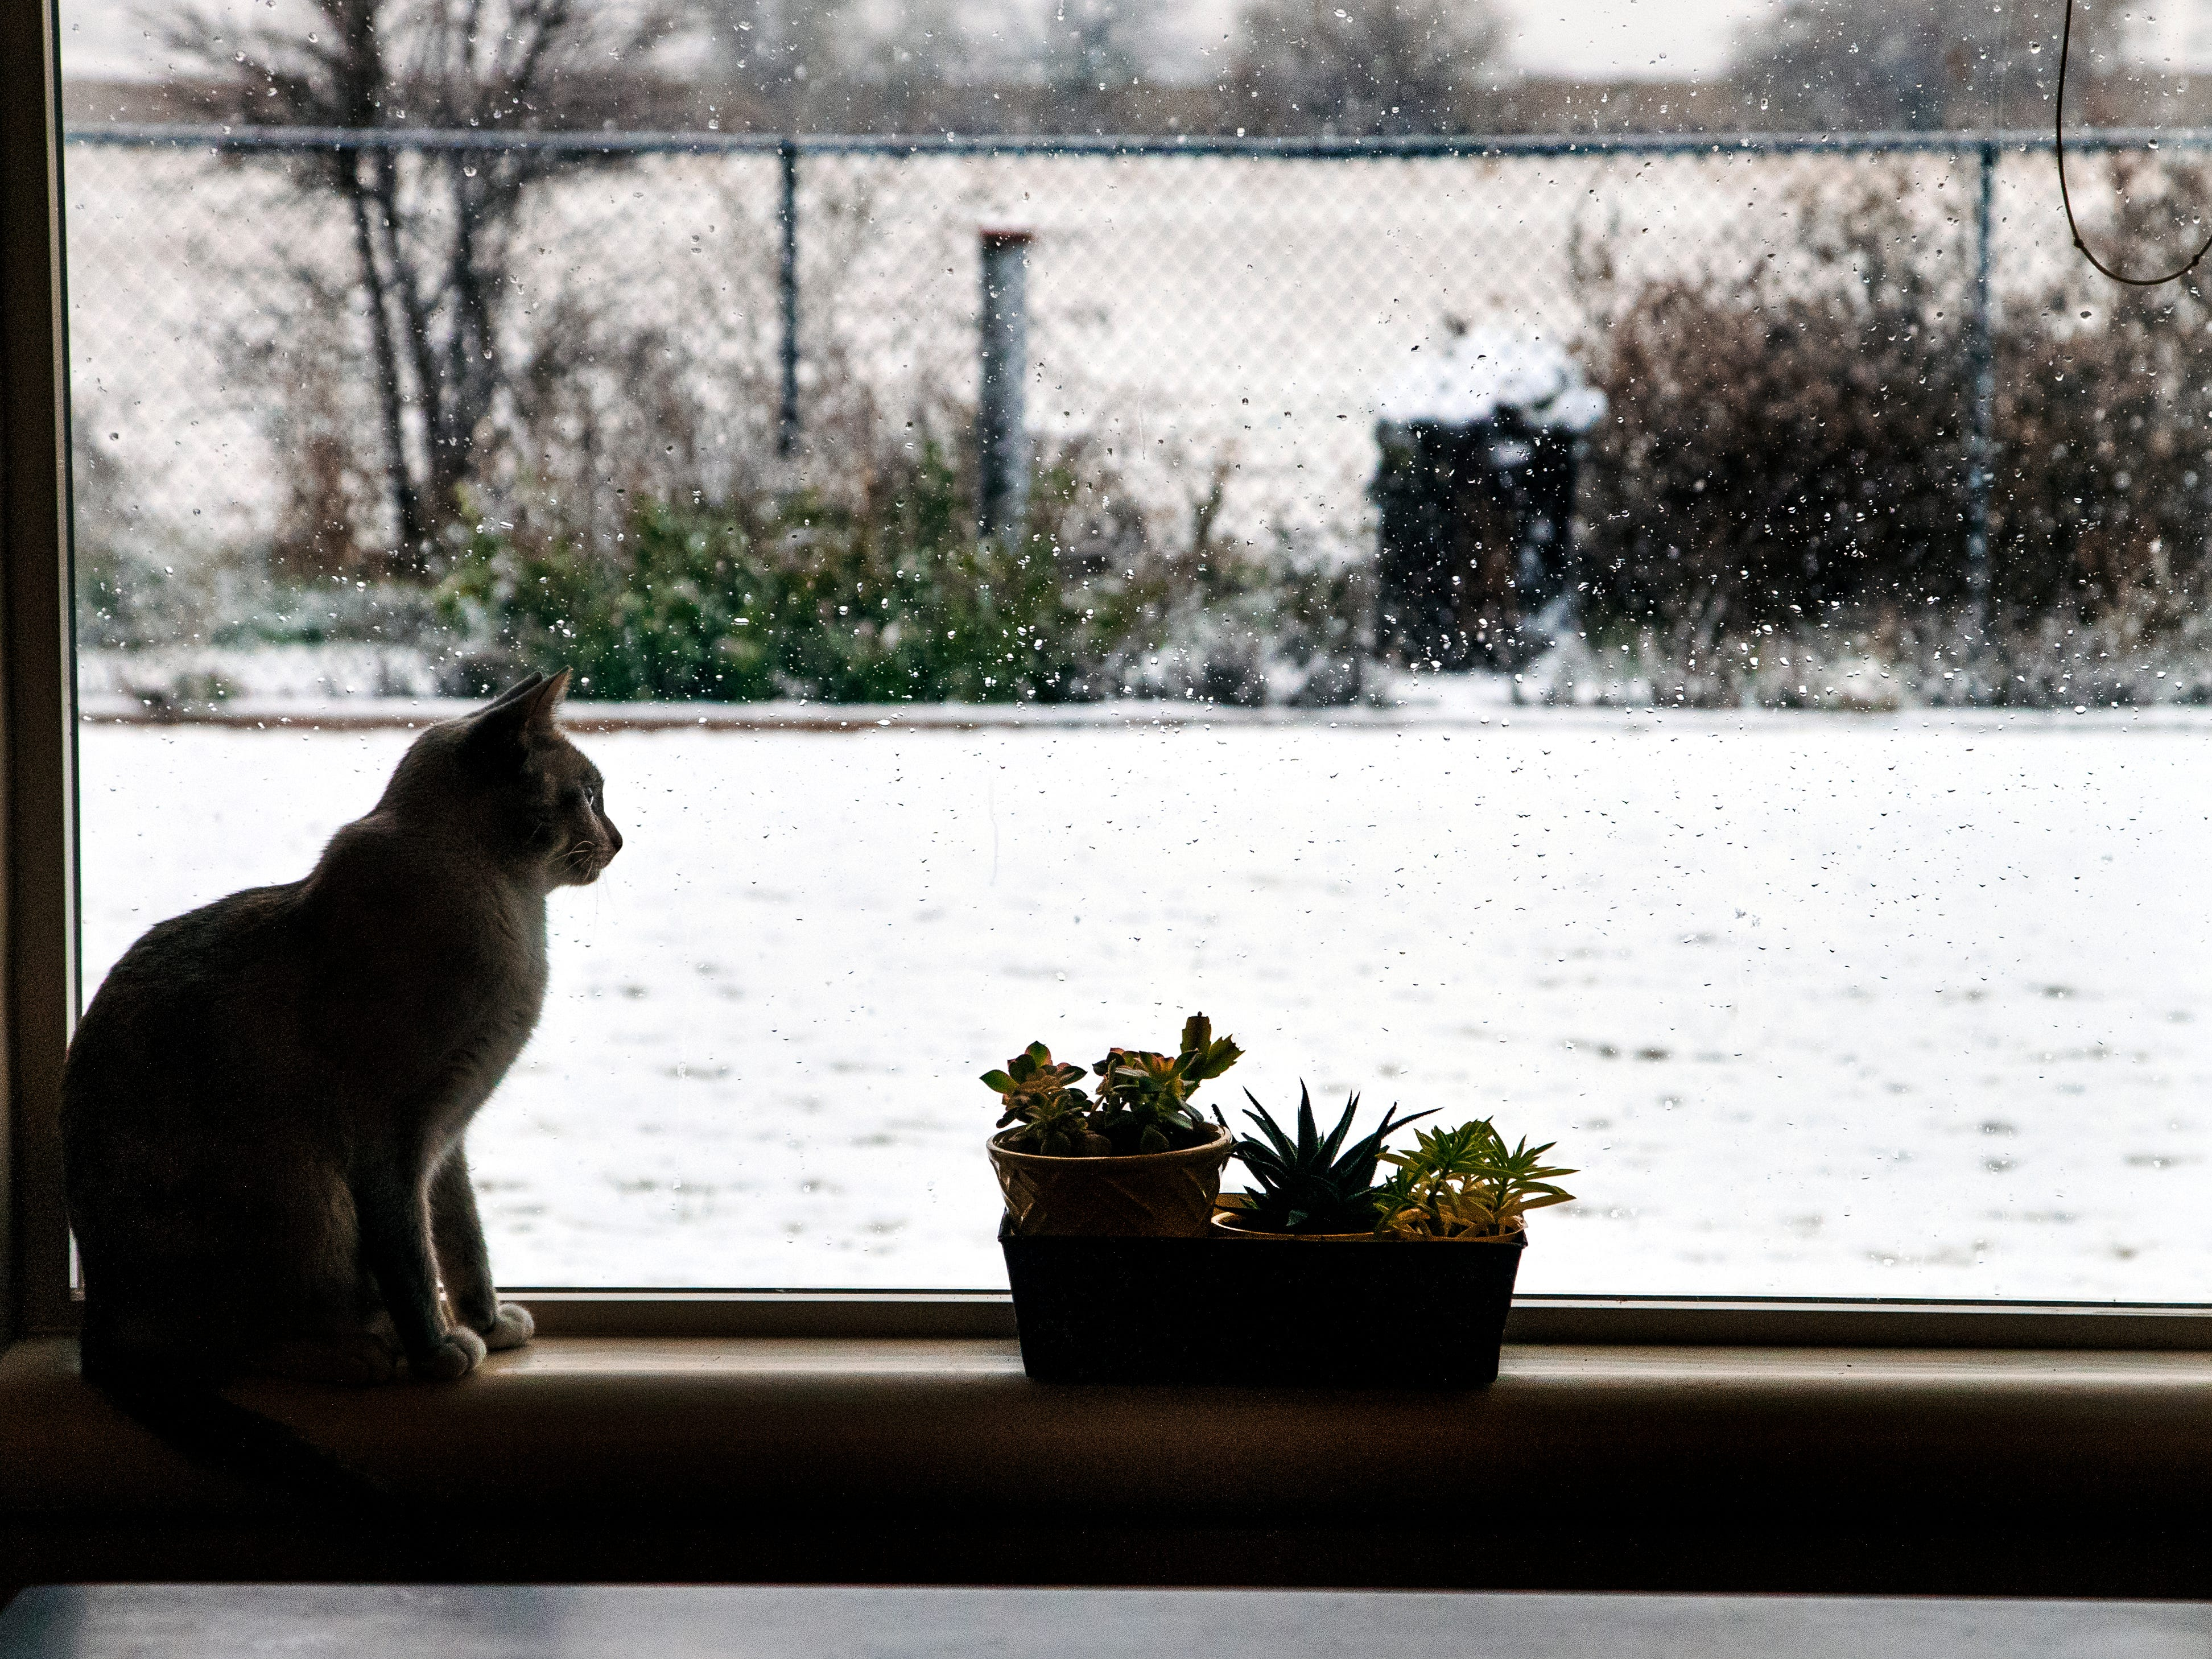 A cat sits in a window watching the snow fall as a winter storm hits the area in Oklahoma City, Okla. on Monday, Nov. 12, 2018.